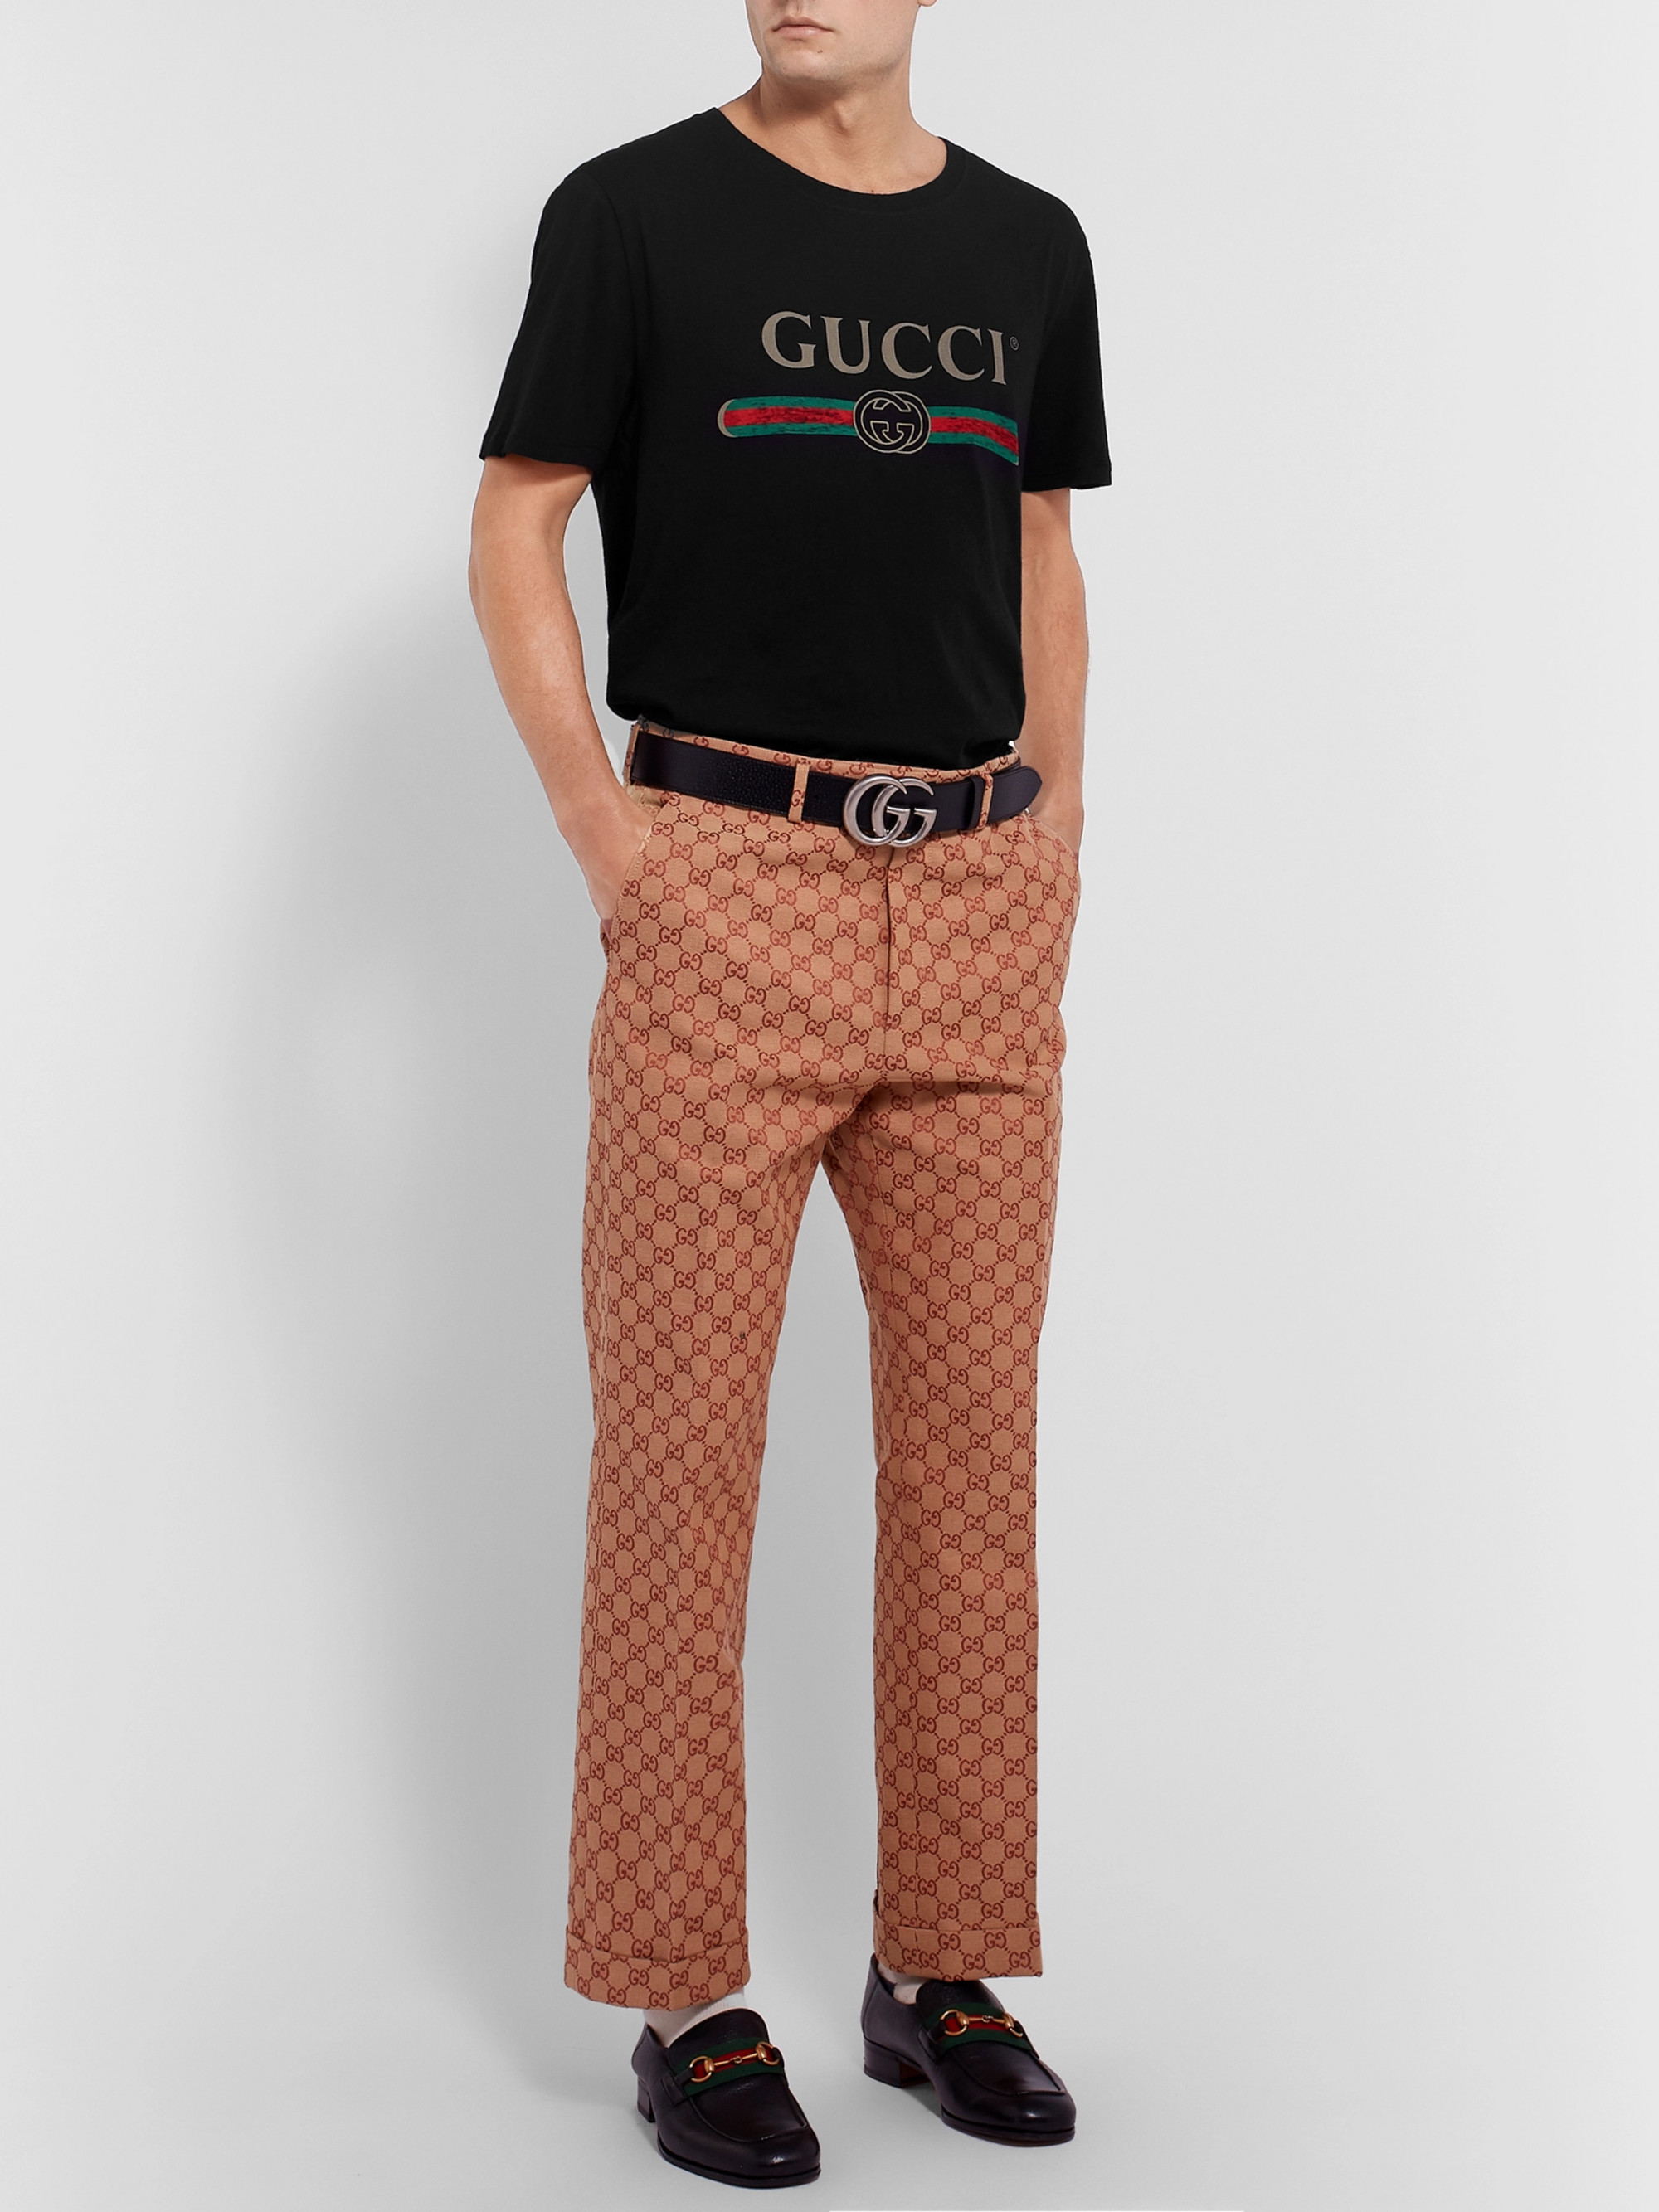 Gucci Distressed Logo-Print Cotton-Jersey T-Shirt